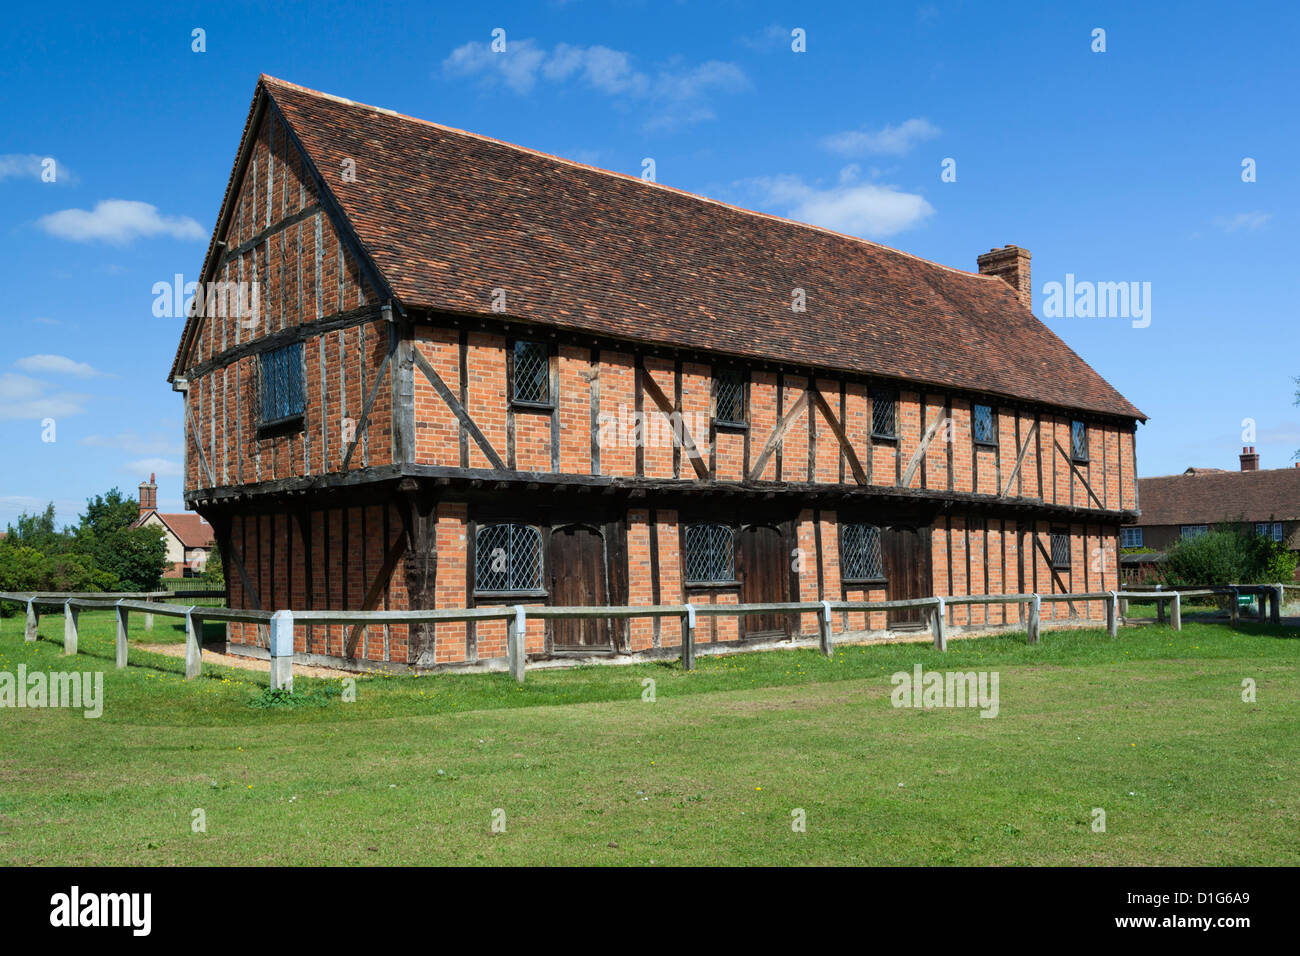 The 15th century Moot Hall, Elstow, Bedfordshire, England, United Kingdom, Europe - Stock Image